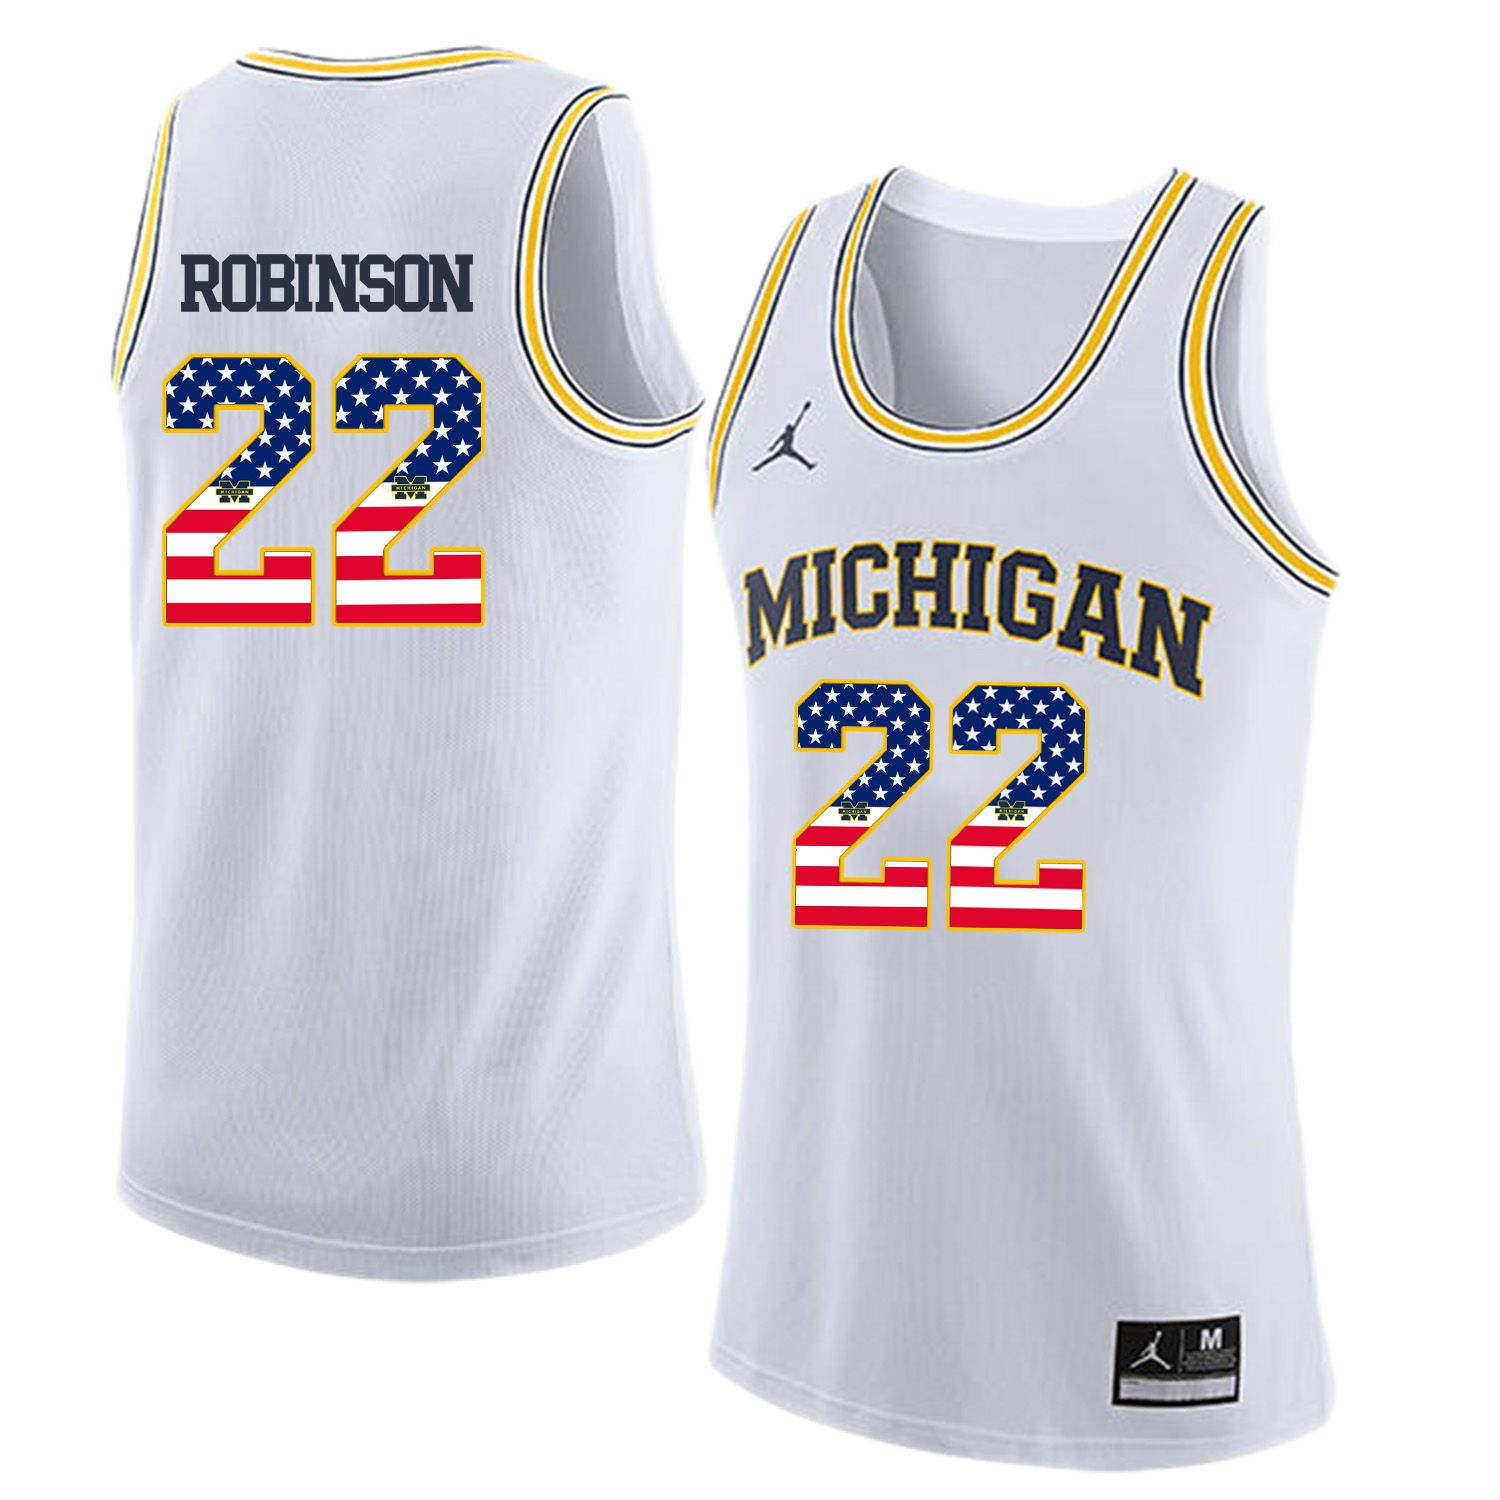 Men Jordan University of Michigan Basketball White 22 Robinson Flag Customized NCAA Jerseys